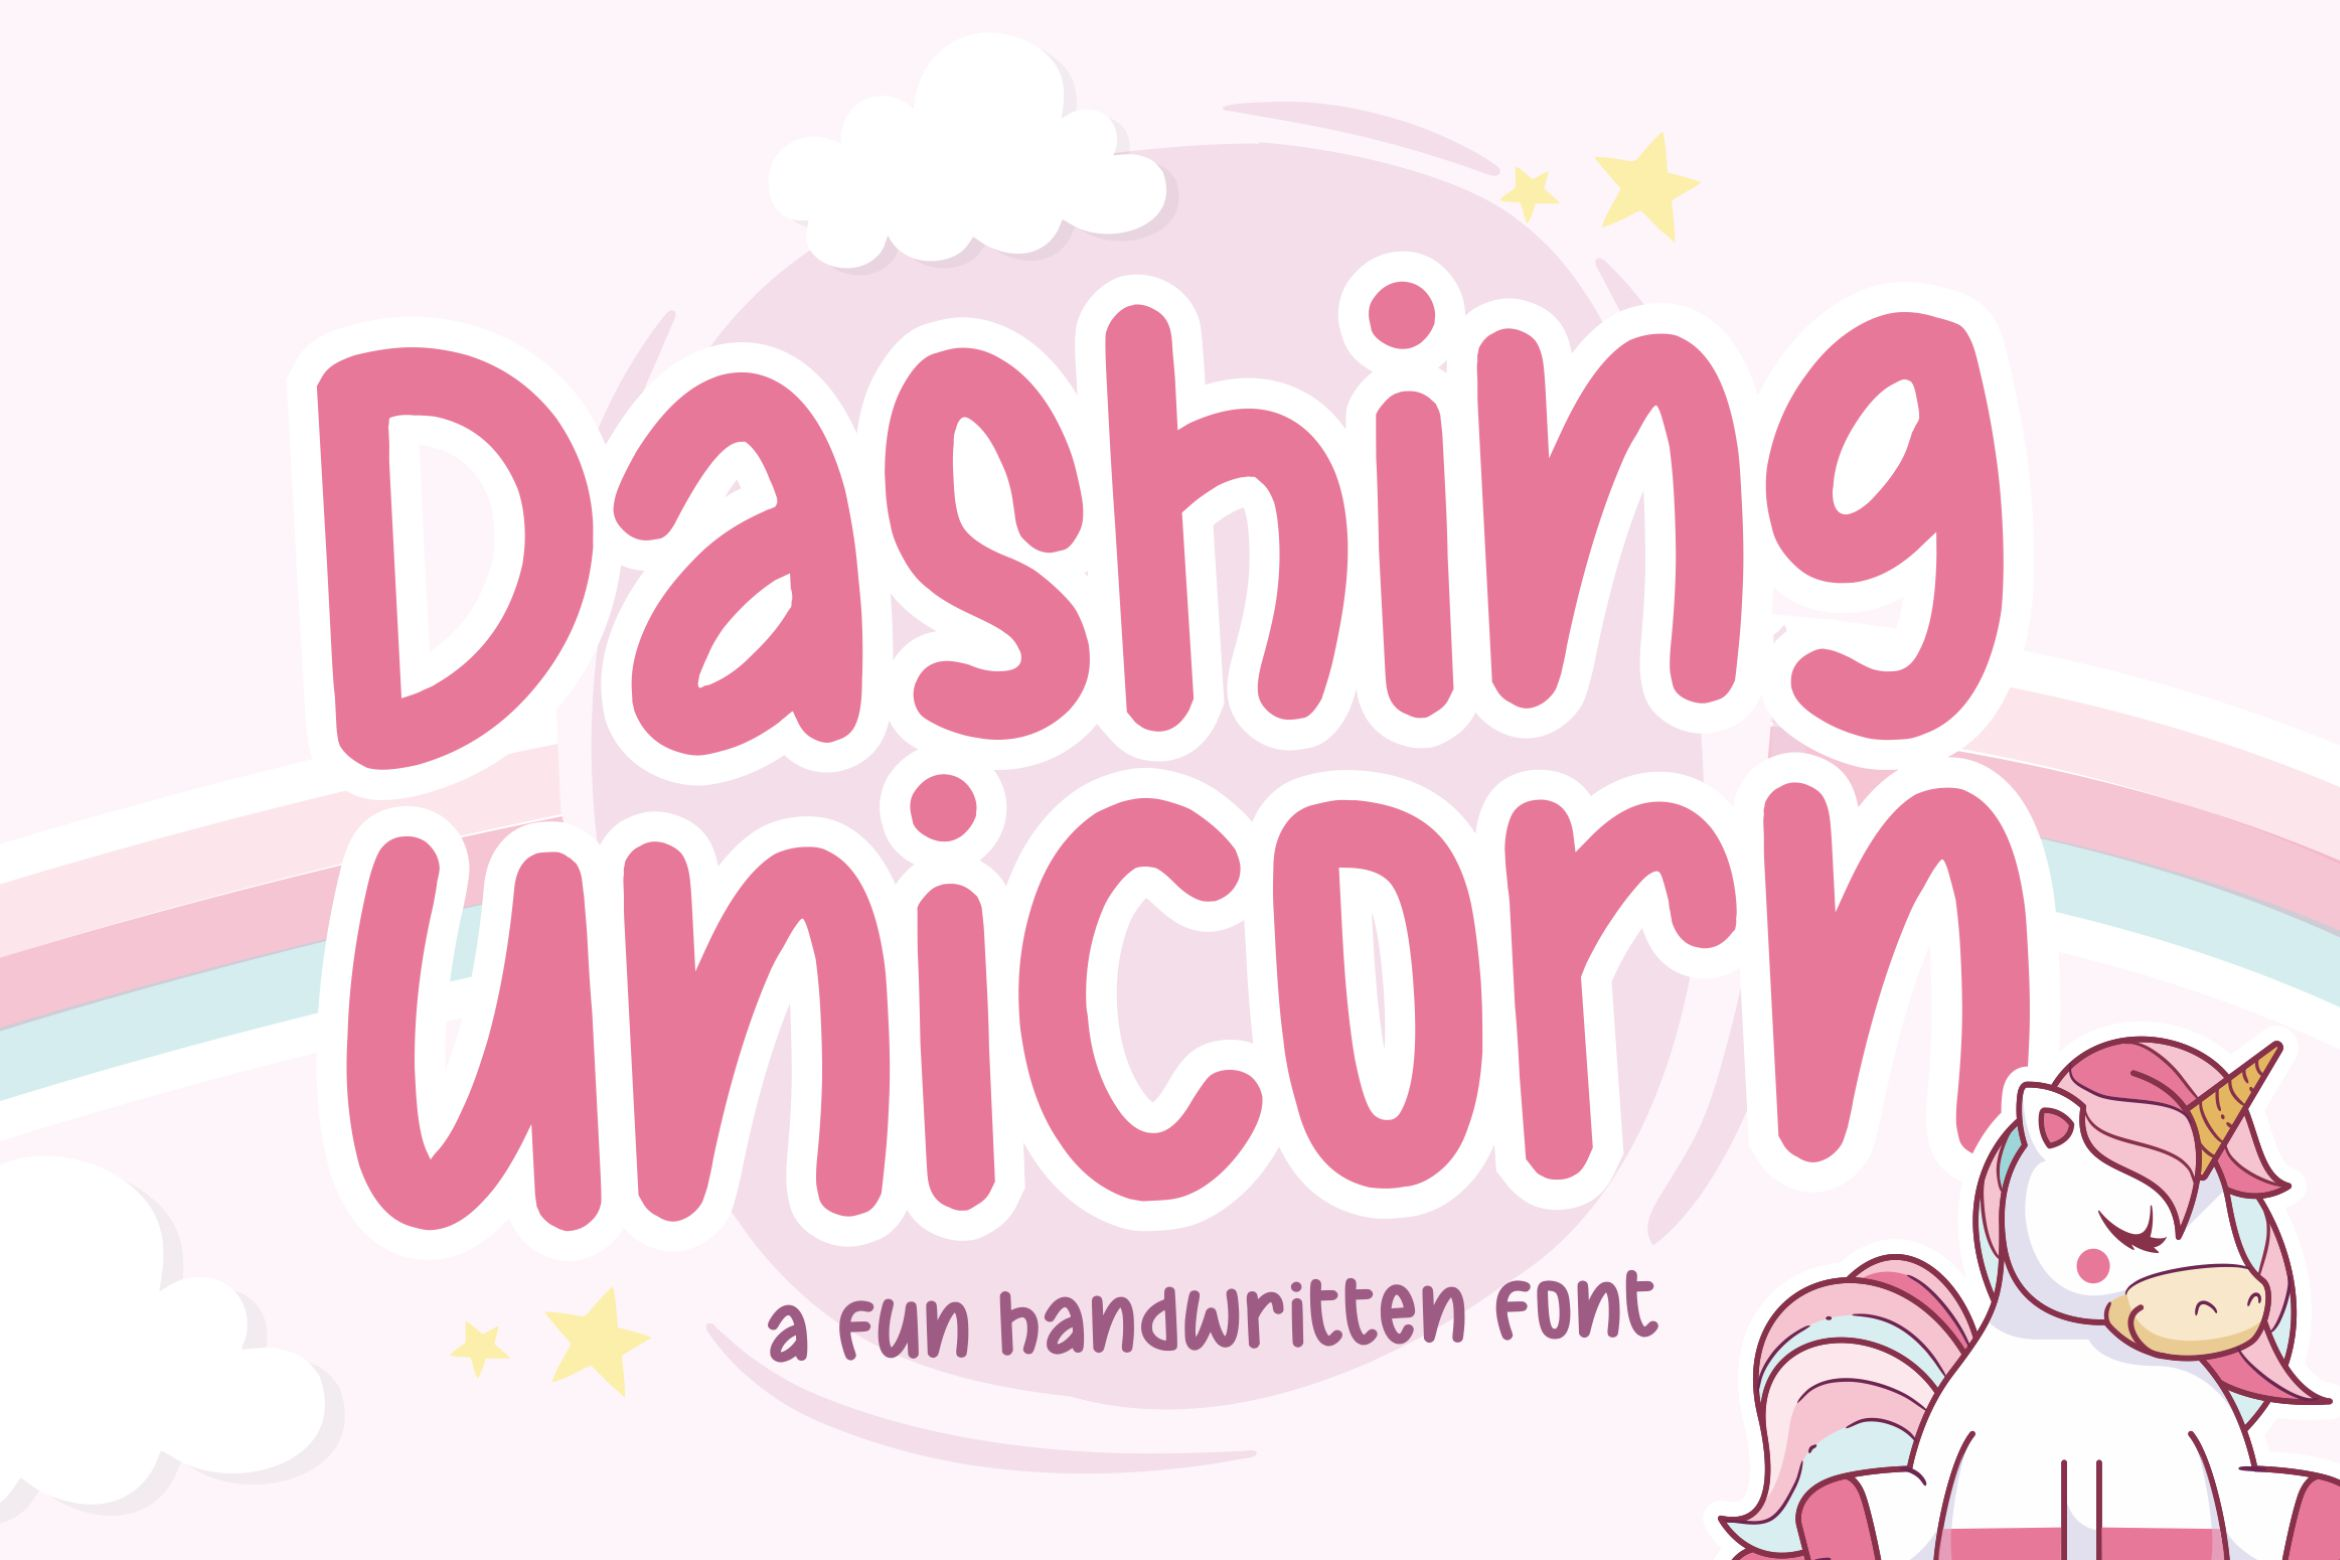 Download Free Dashing Unicorn Font By Balpirick Creative Fabrica for Cricut Explore, Silhouette and other cutting machines.